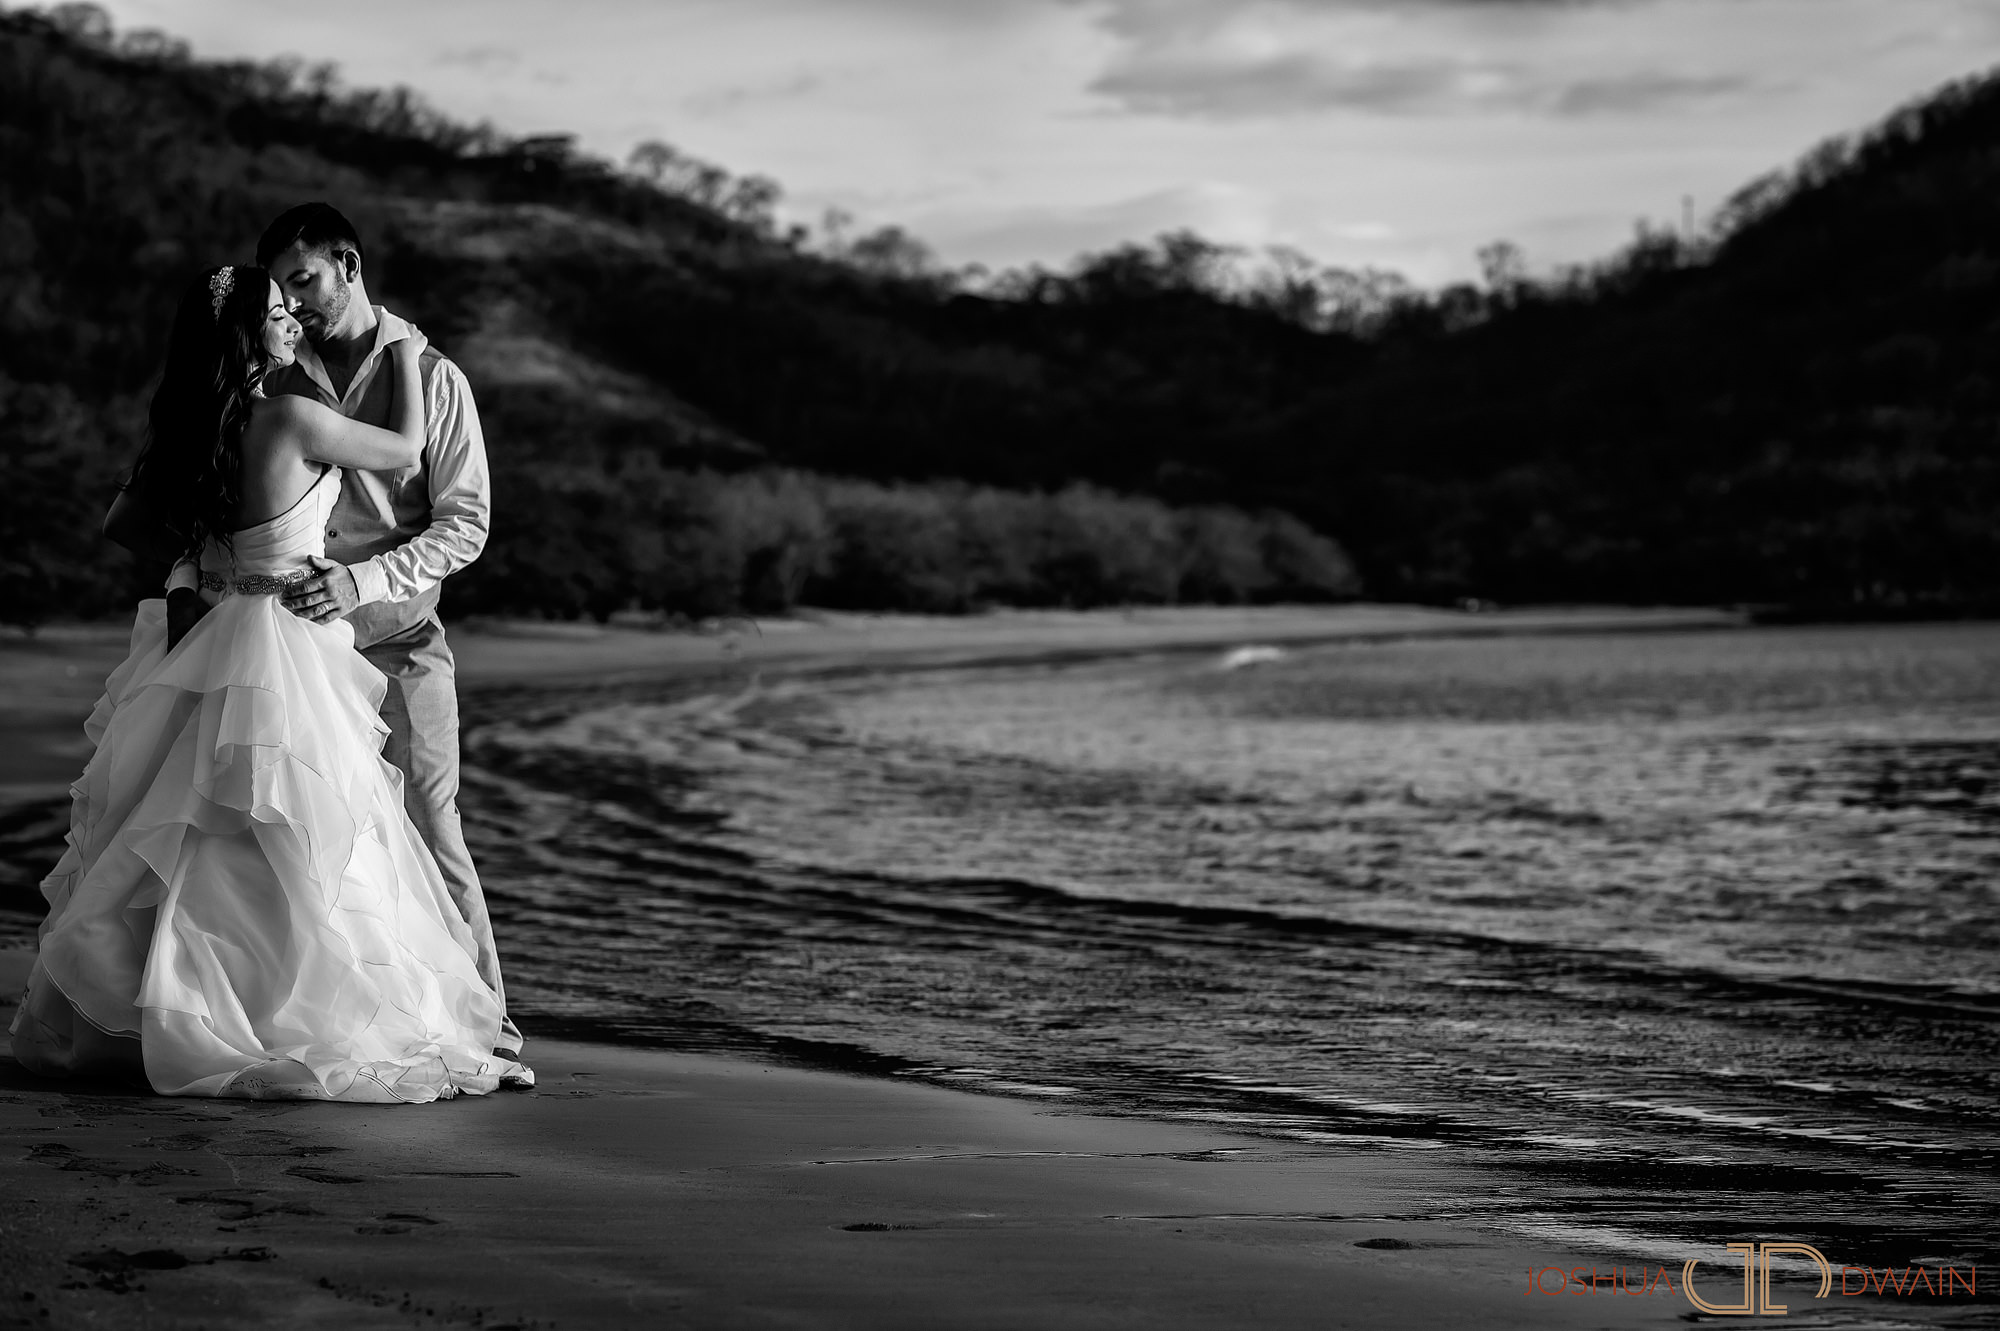 lana-arthur-039-dreams-las-mareas-costa-ricadestination-wedding-photographer-joshua-dwain